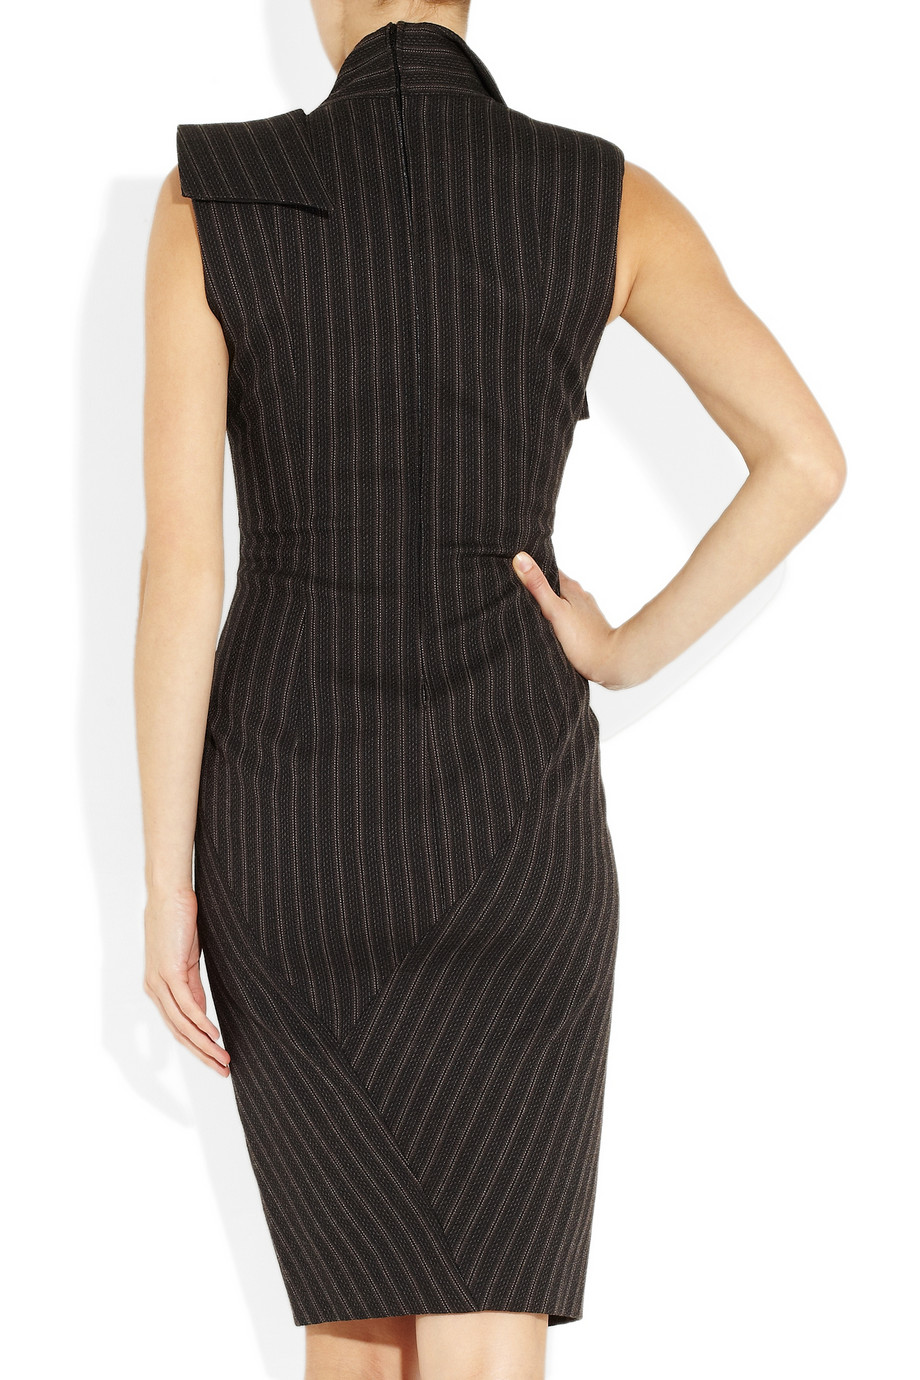 Donna Karan Origami Wool Blend Dress In Anthracite Gray